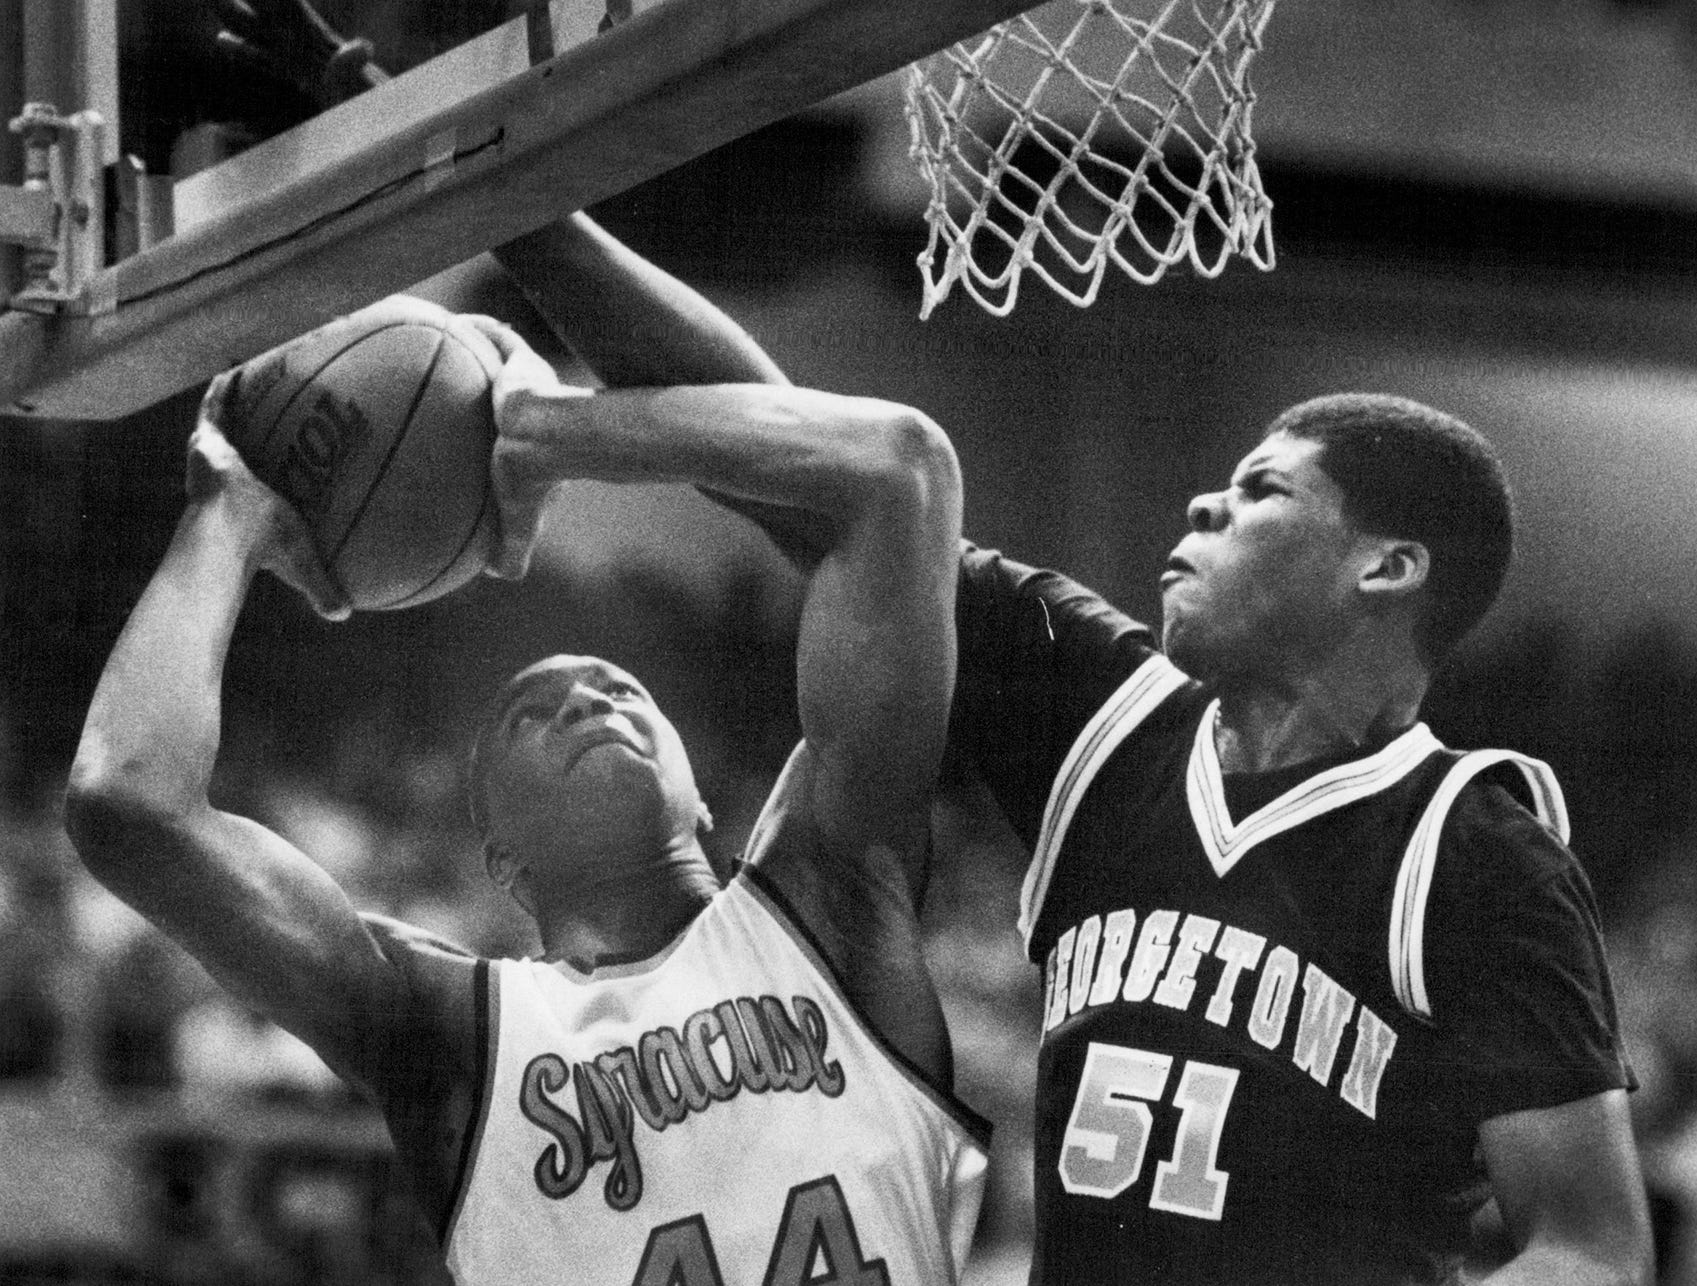 Syracuse star Derrick Coleman is fouled by Georgetown's Ben Gillery in this photo from #1988.